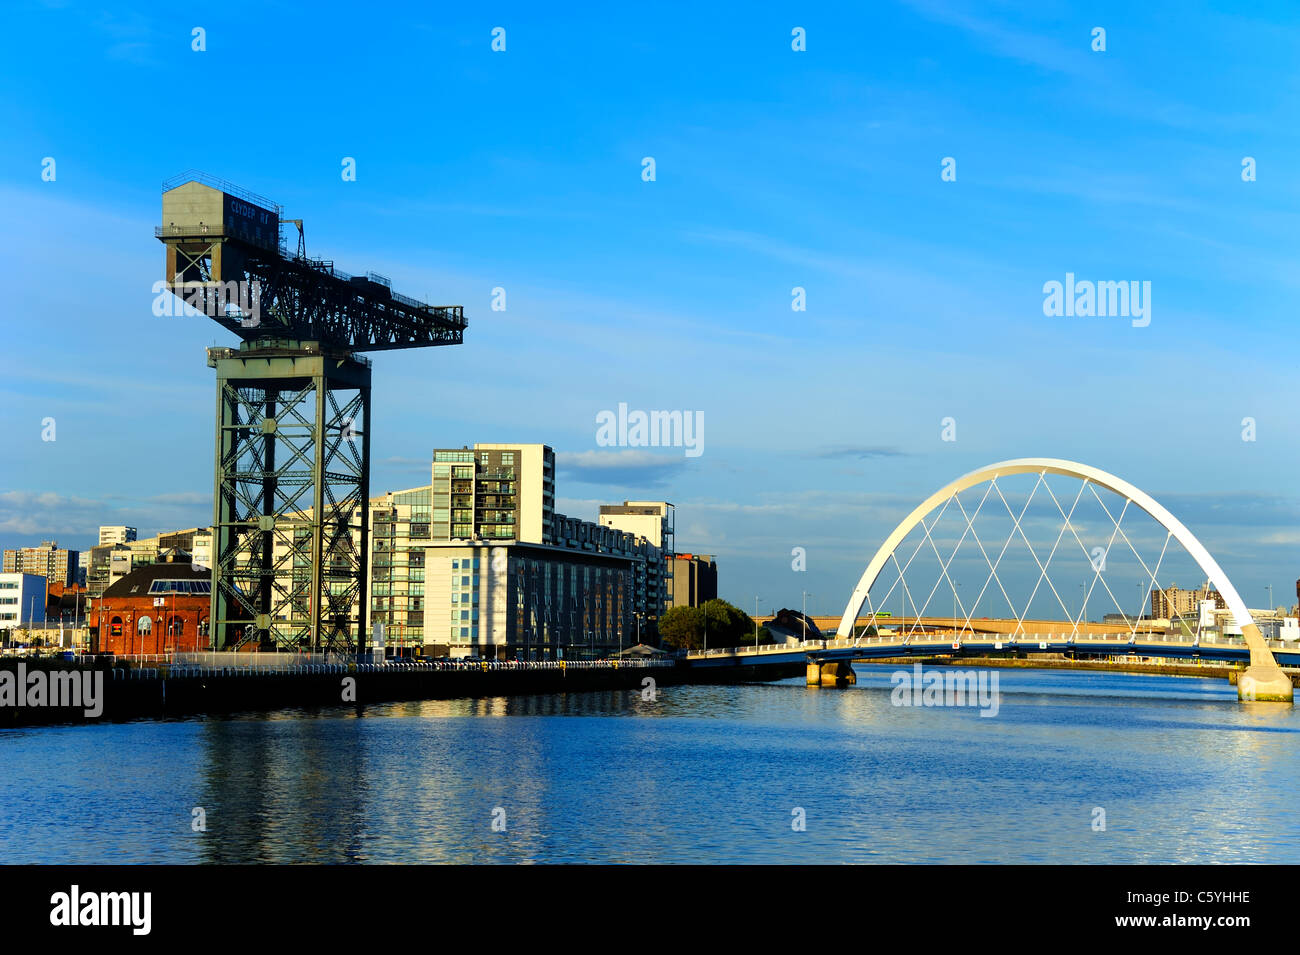 The Finnieston Crane and the Clyde Arc bridge, over the River Clyde, Glasgow Stock Photo